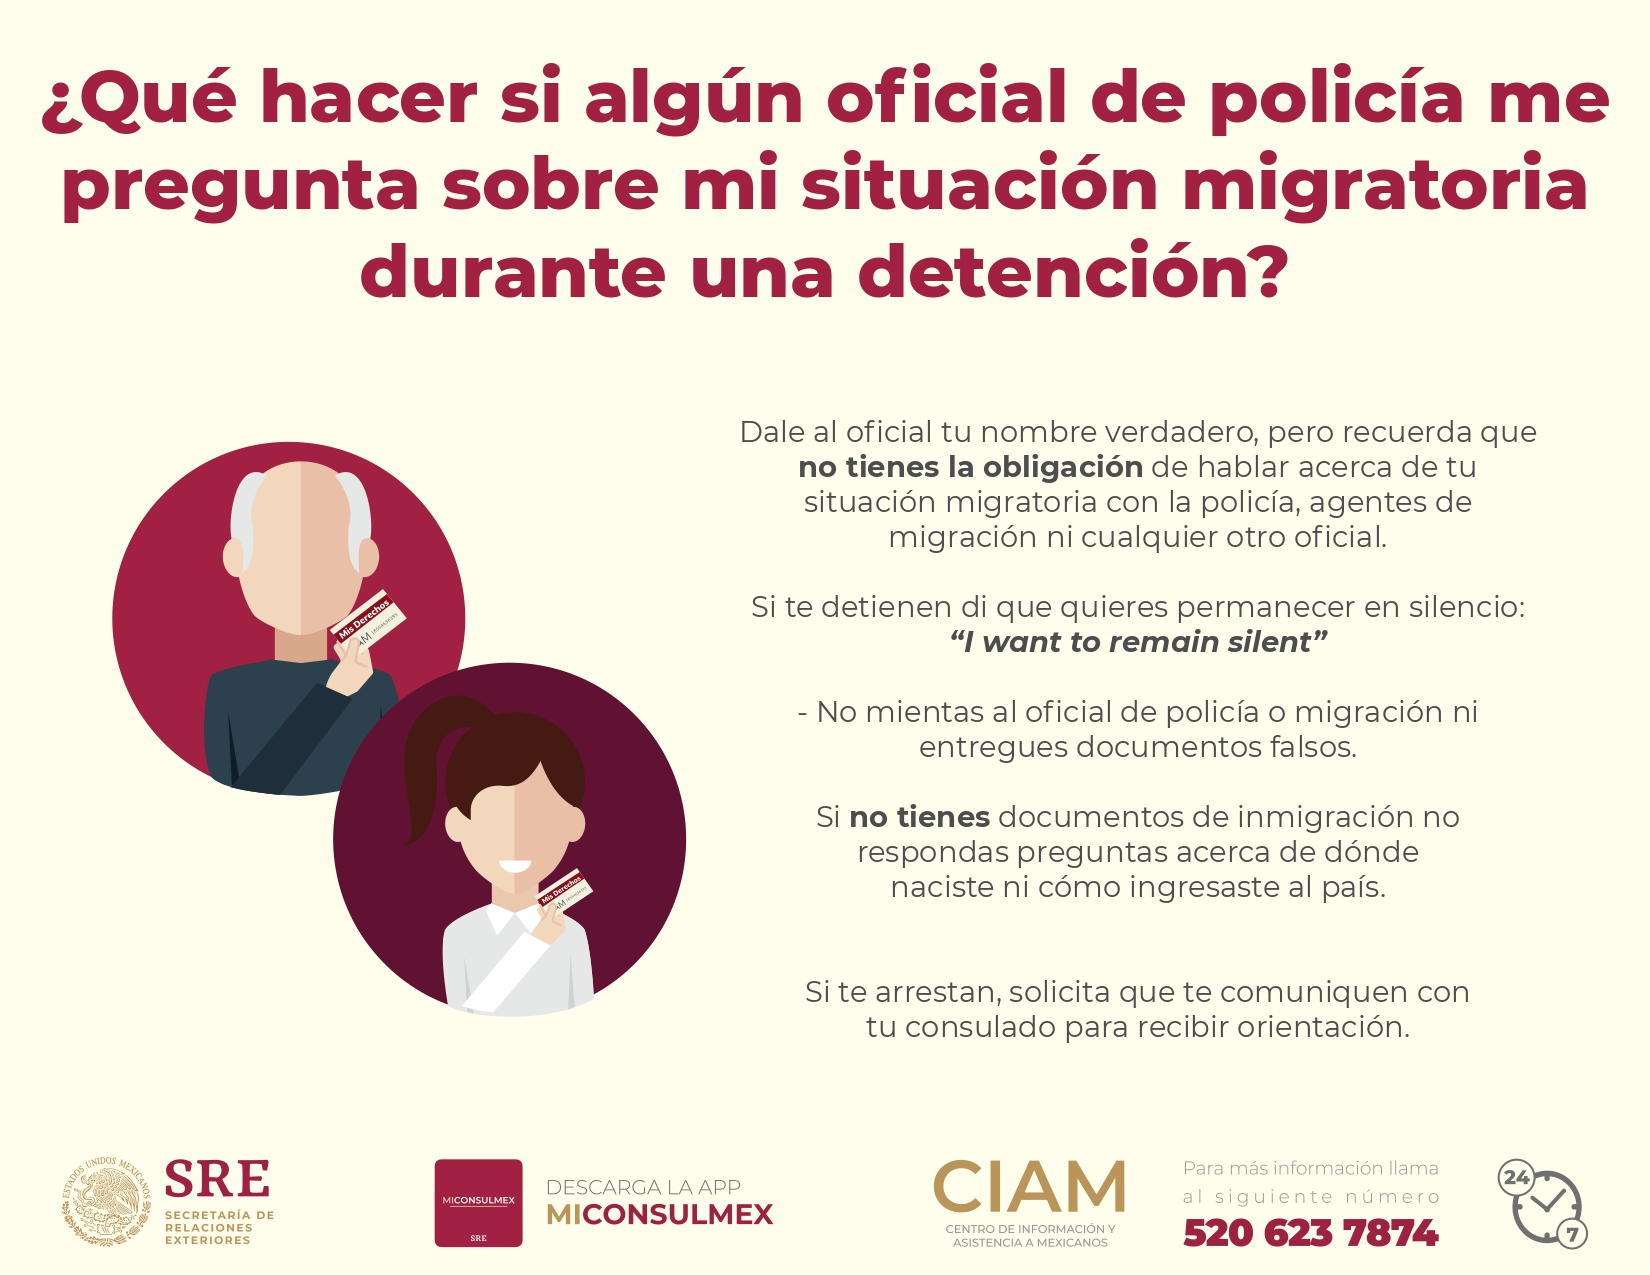 /cms/uploads/image/file/525282/Detencion_Migratoria_-_2019.jpg